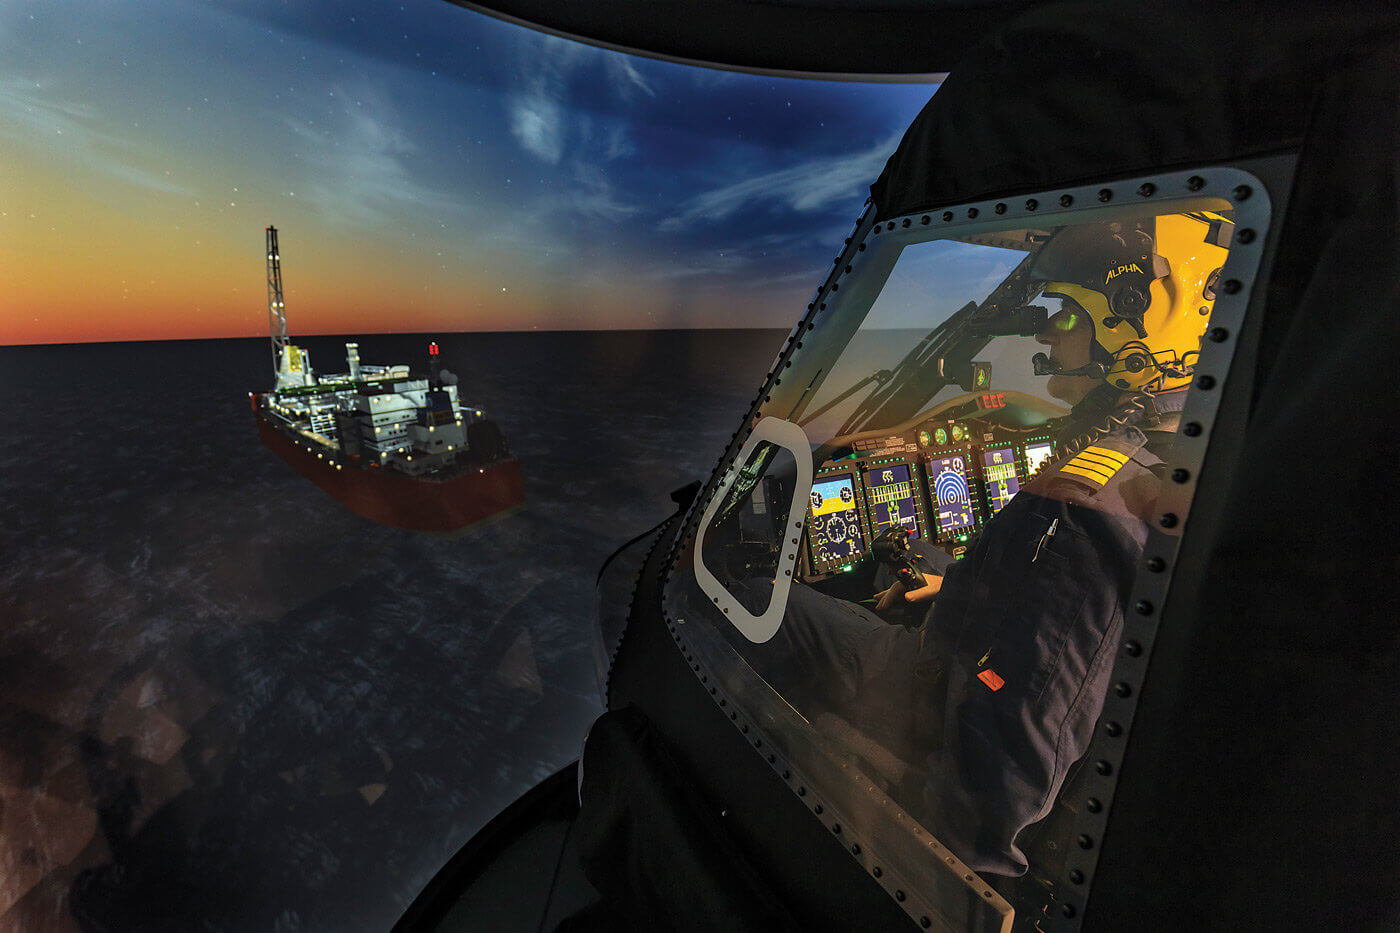 The helicopter training and R&D centre, located in Mount Pearl, N.L., was built and is run by Montreal, Que.-based CAE. It contains a Sikorsky S-92 simulator that is the first Level D simulator in Canada to be compatible with night vision goggles. Heath Moffatt Photos